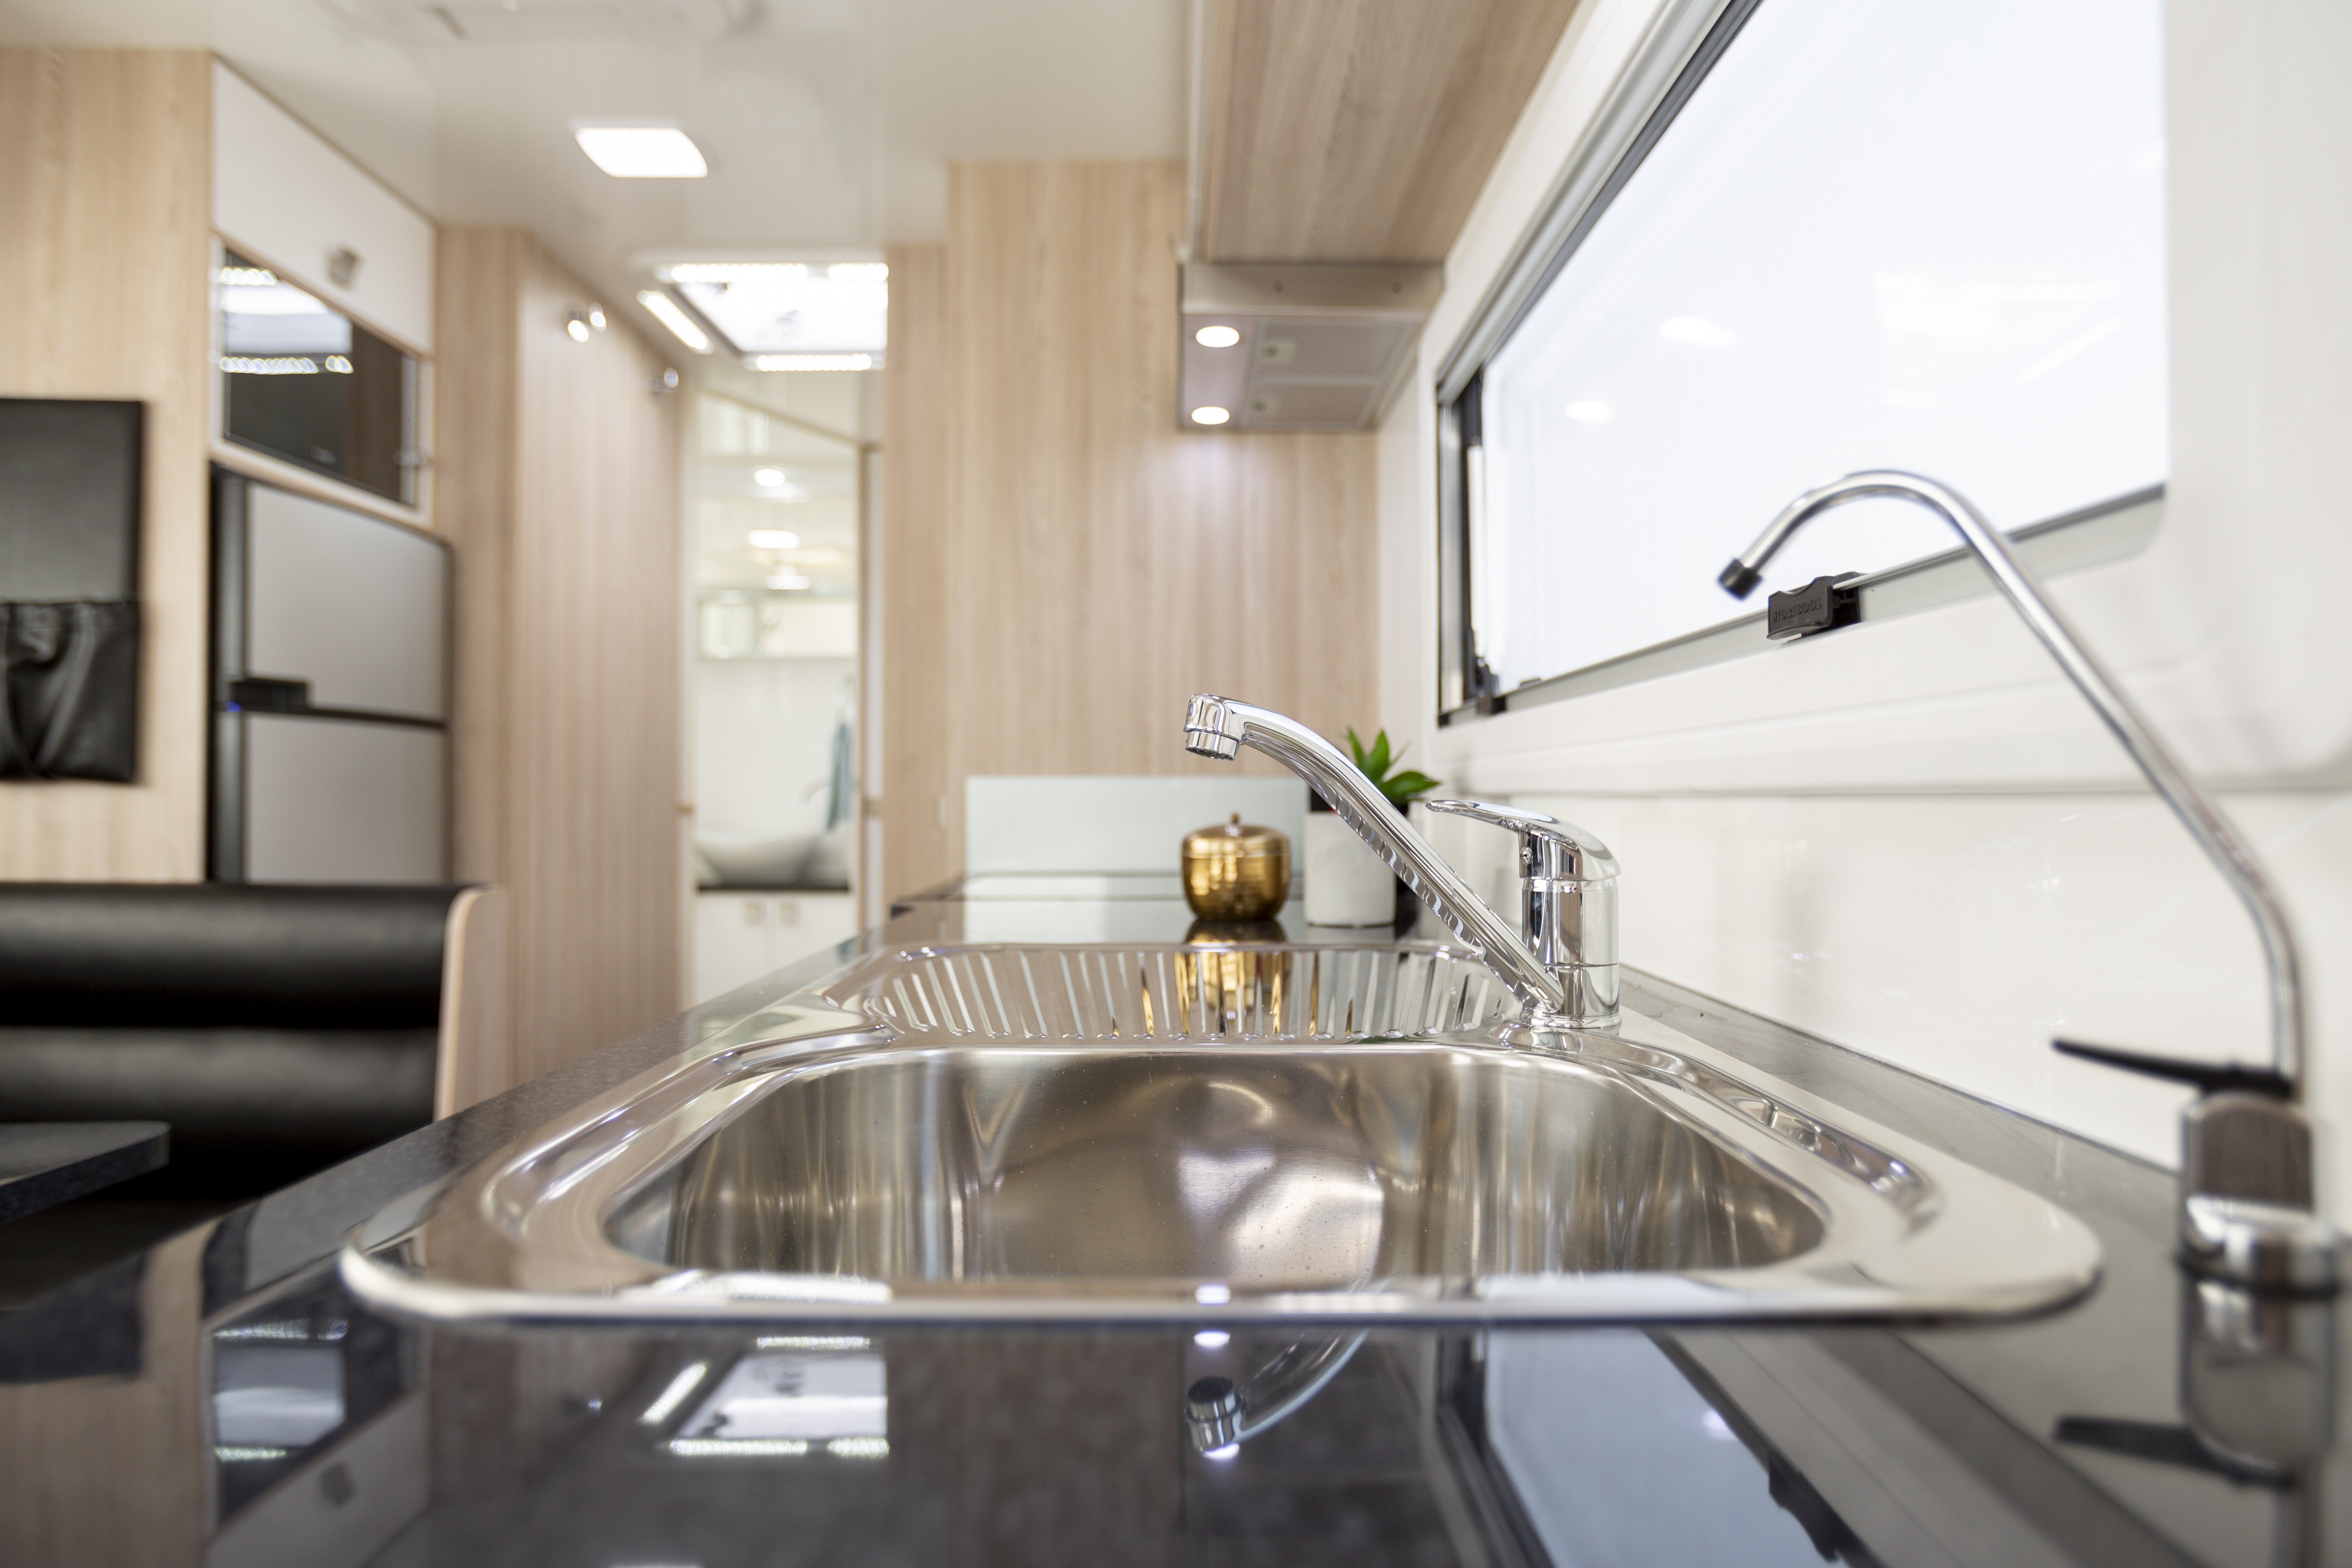 Apollo Motorhome Holidays Australia, Mossman C Internal 6